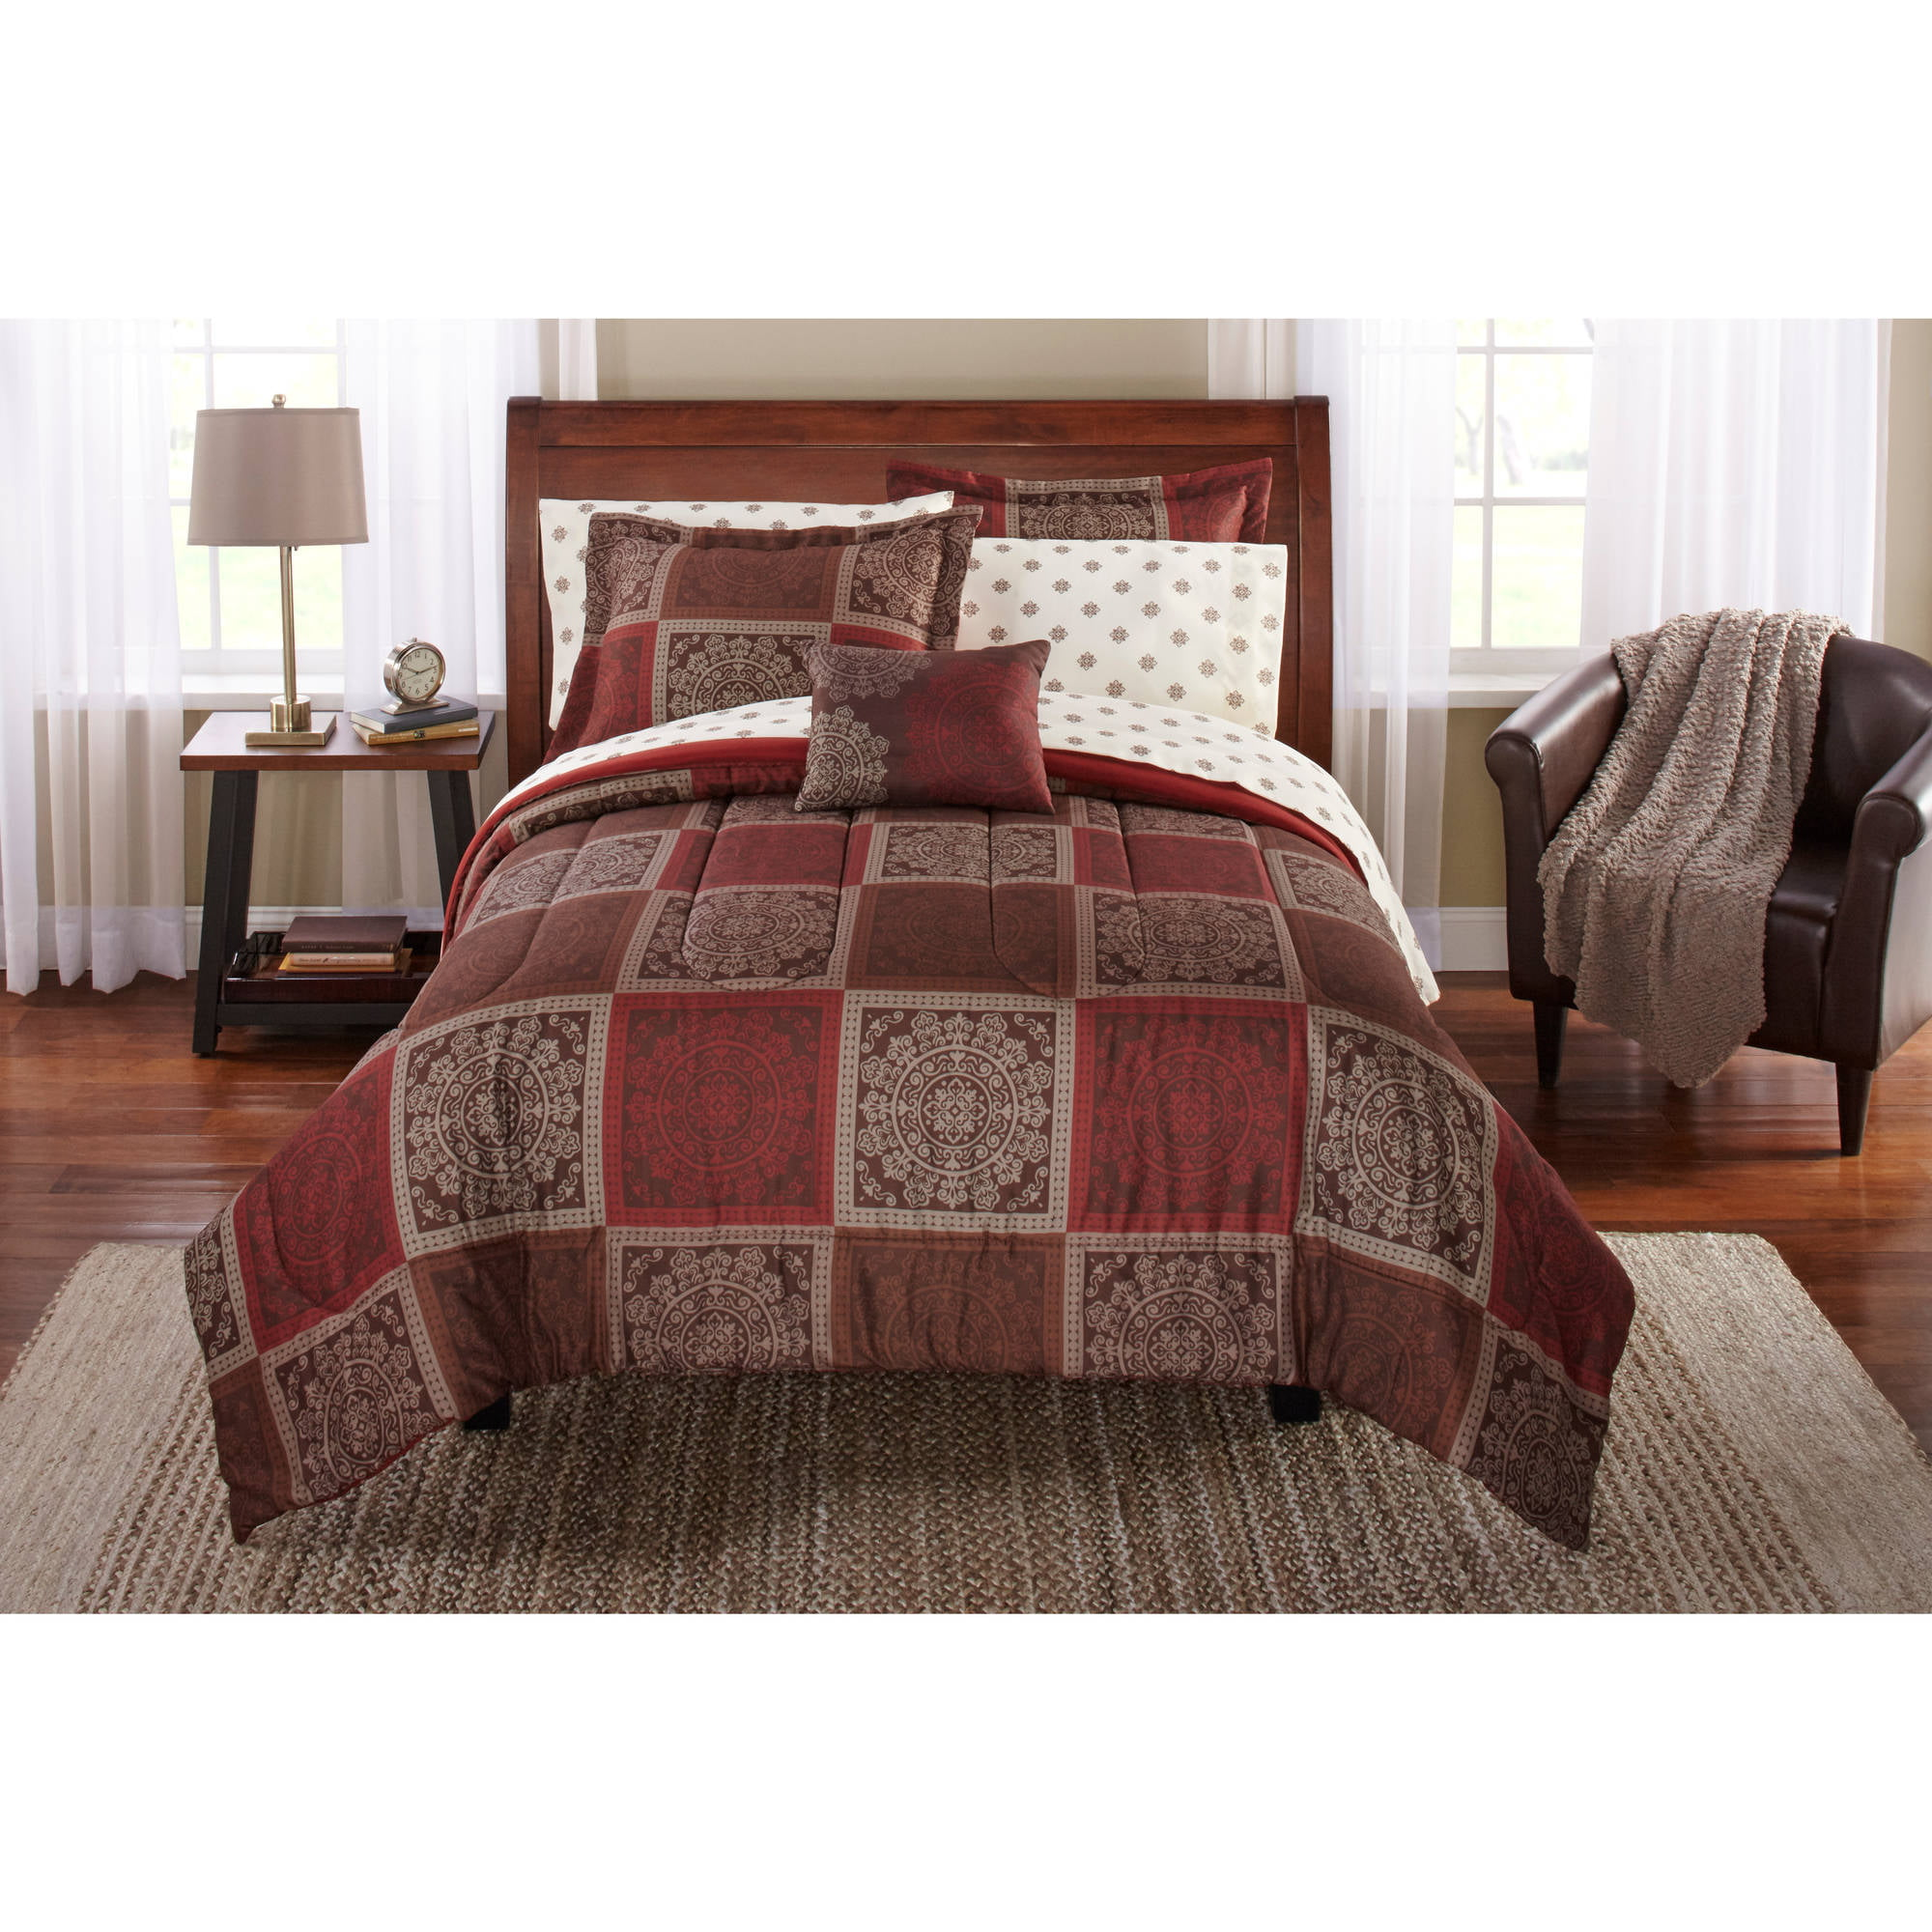 Brown and red bedding - Brown And Red Bedding 32